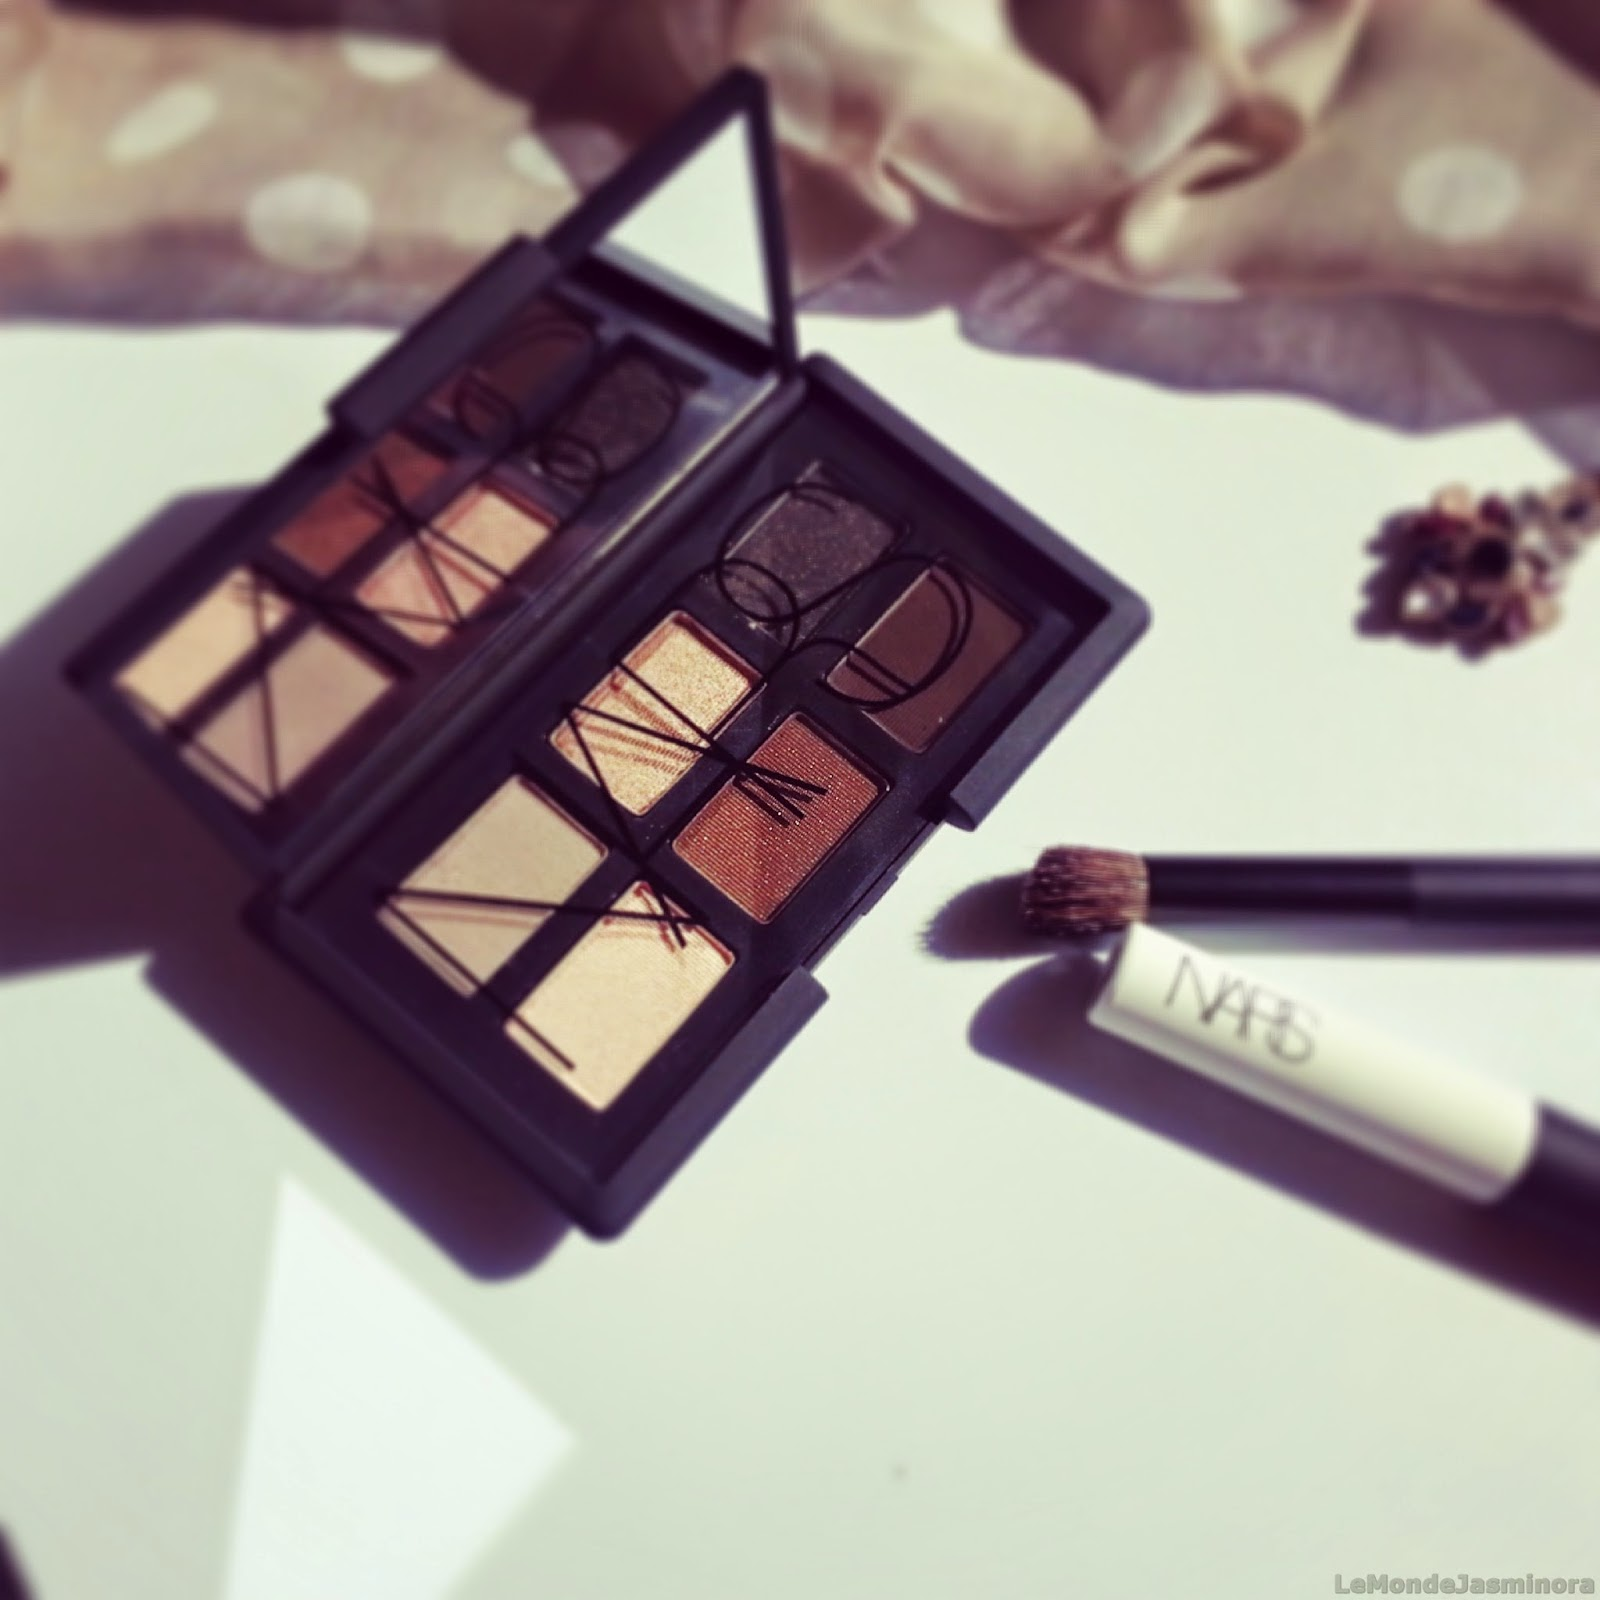 Nars, Nars And God Created the Woman palette, Nars Smudge Proof Eyeshadow Base